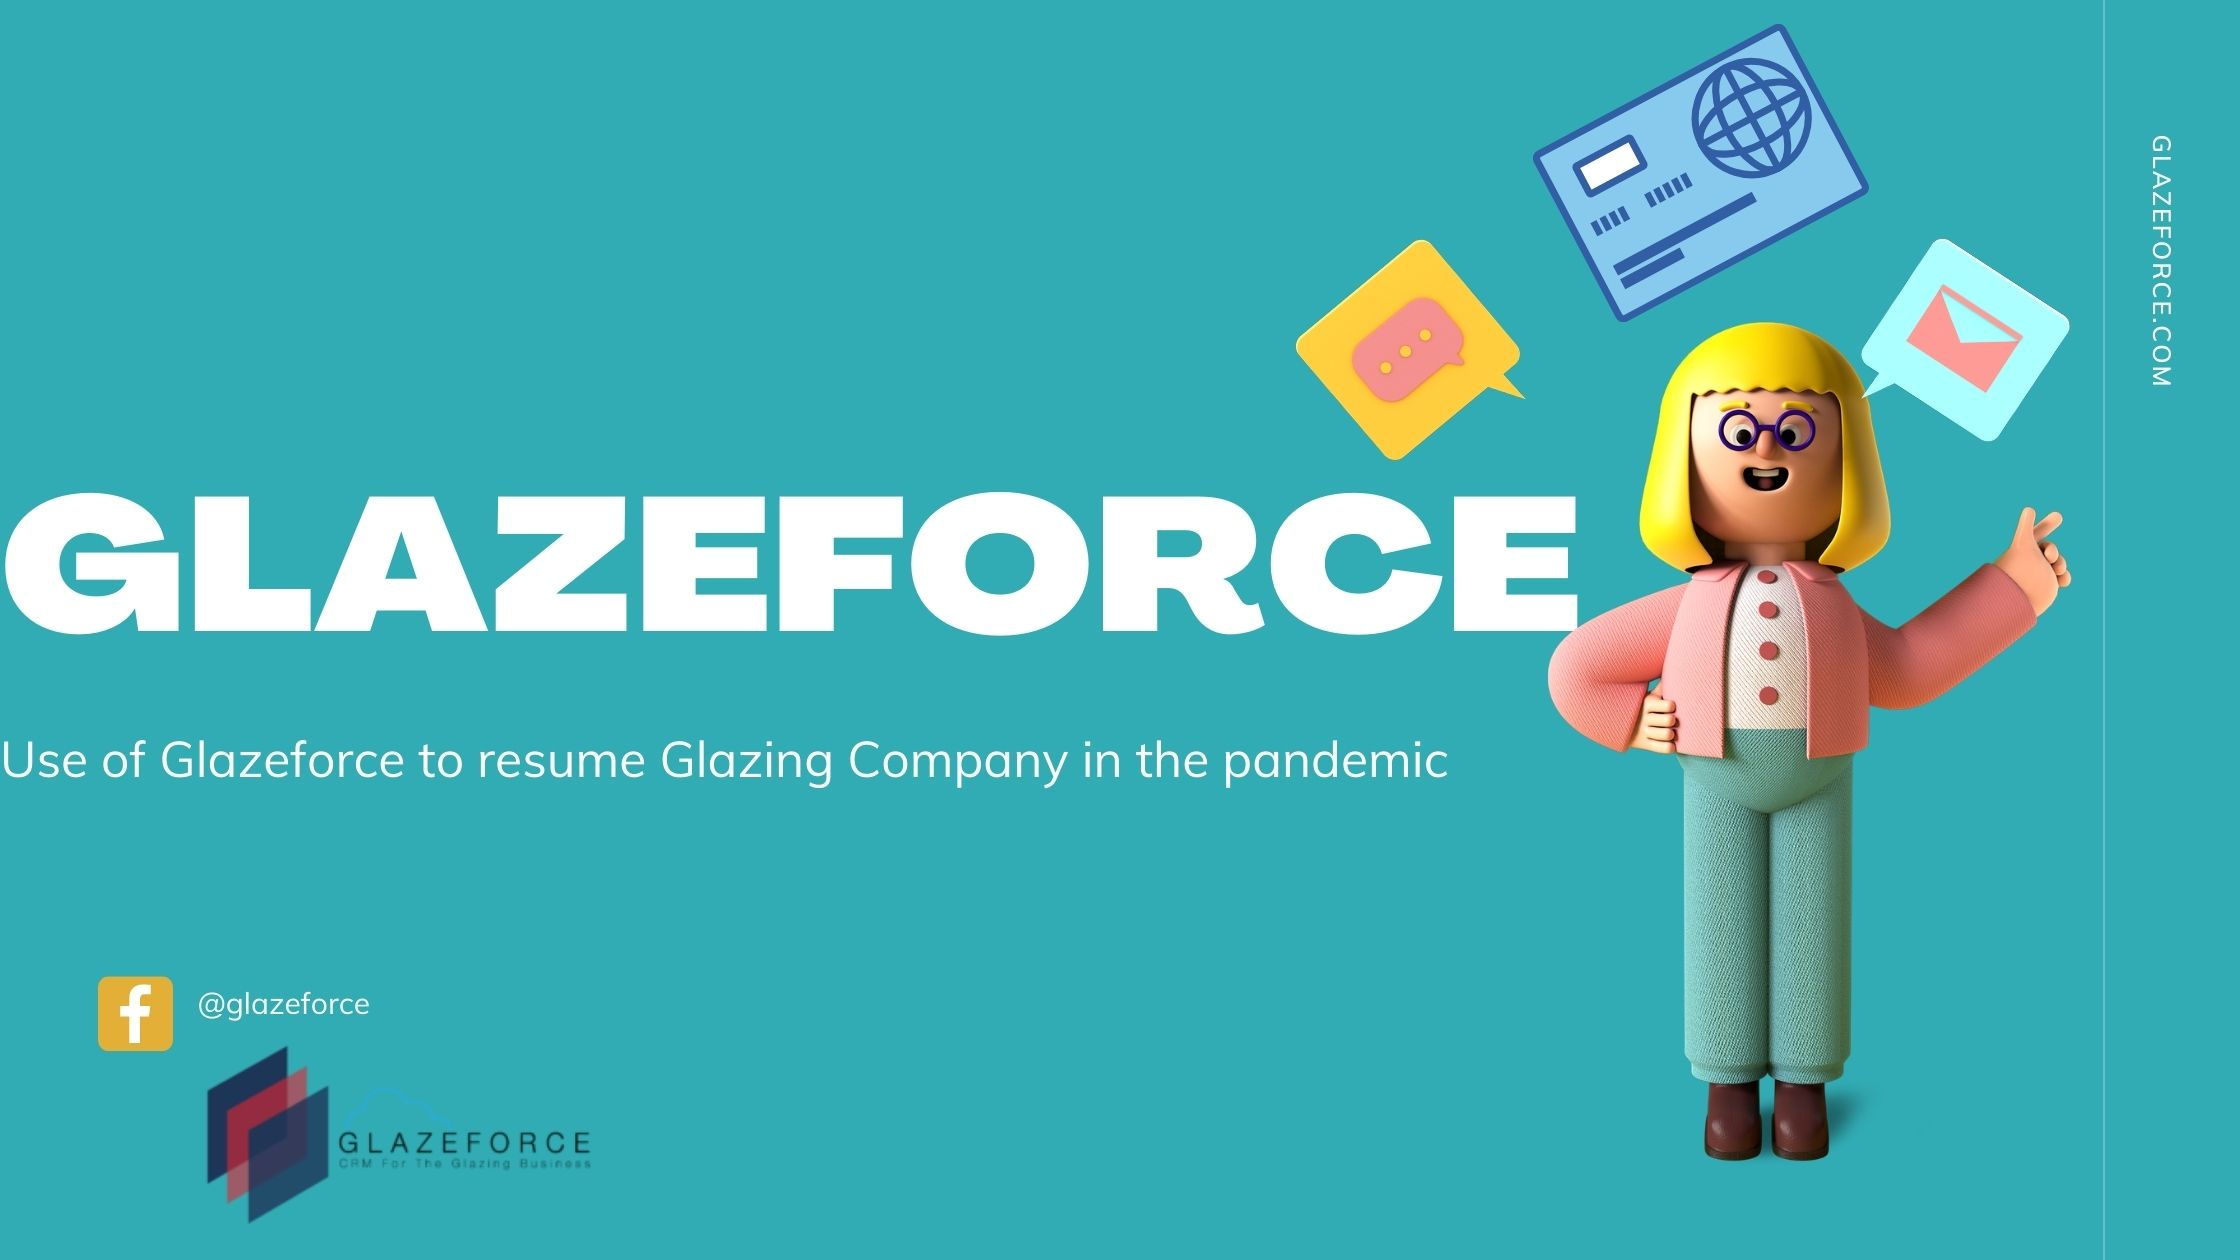 Use Glazeforce to resume glazing company in the pandemic